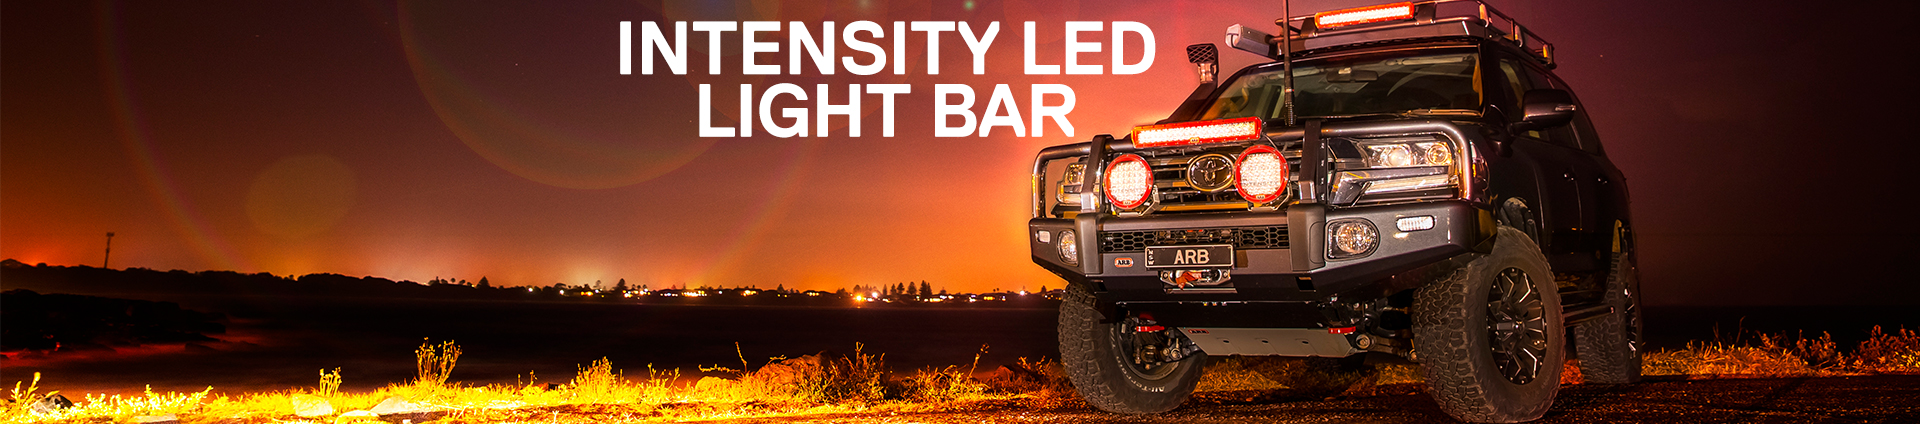 Intensity Light Bar - ARB Maroochydore 4x4 Accessories